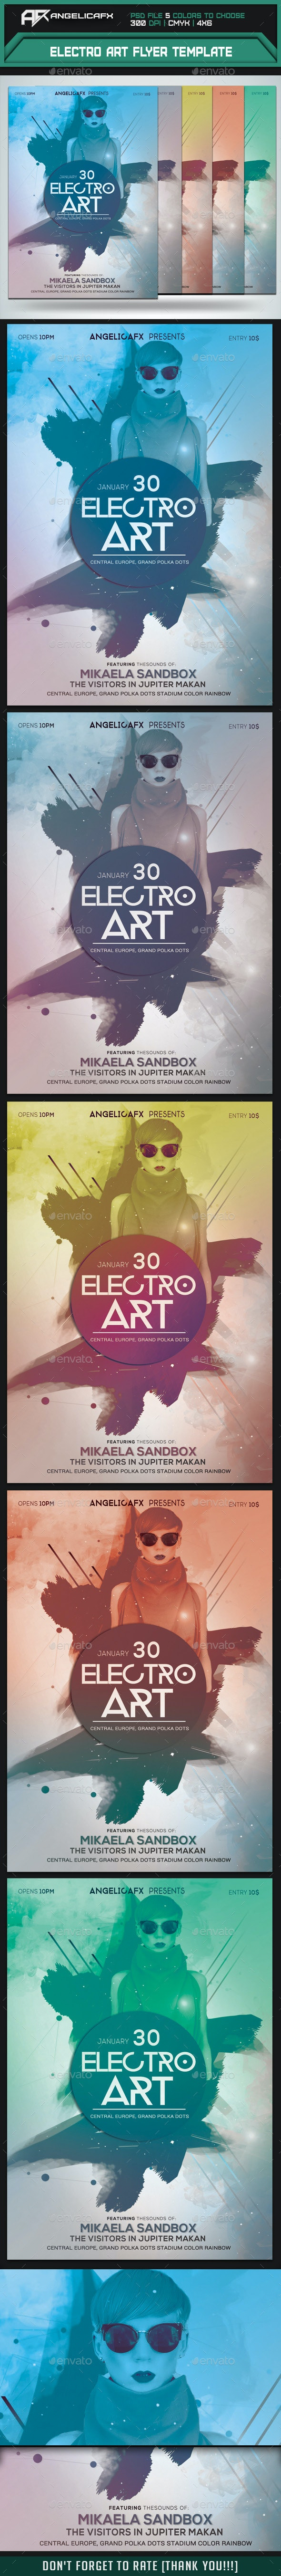 Electro Art Flyer Template - Flyers Print Templates